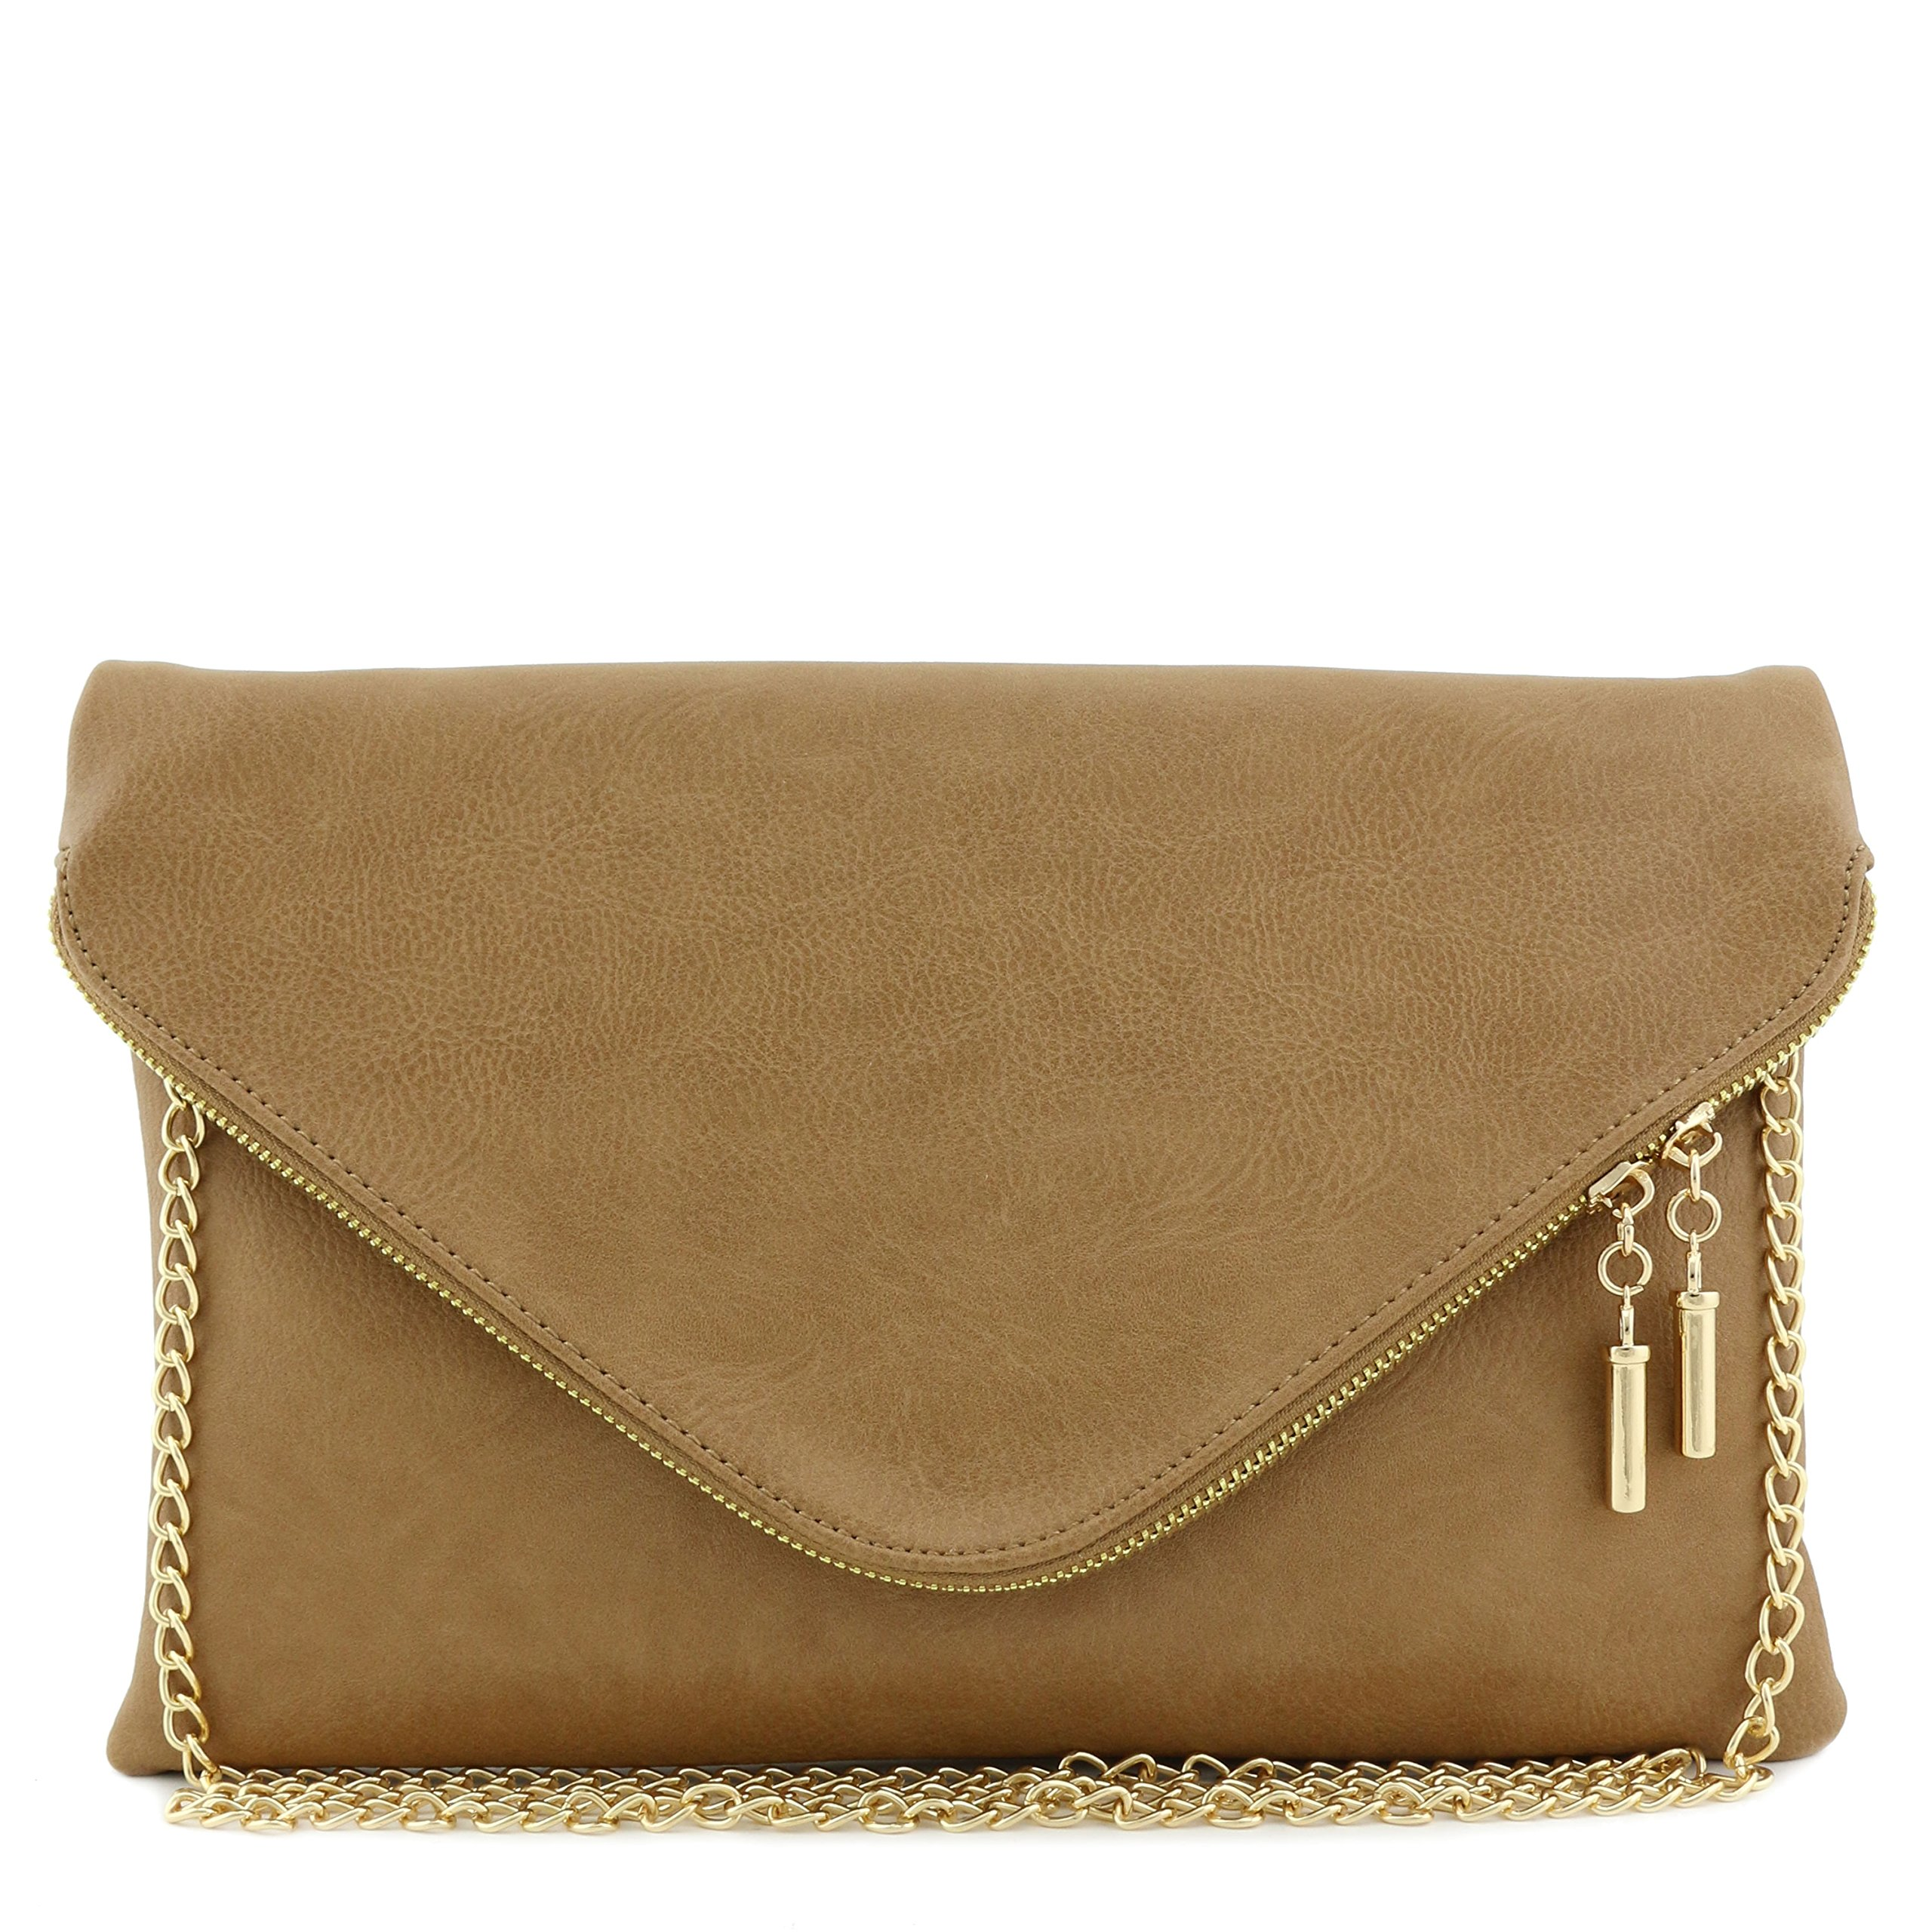 Large Envelope Clutch Bag with Chain Strap Stone